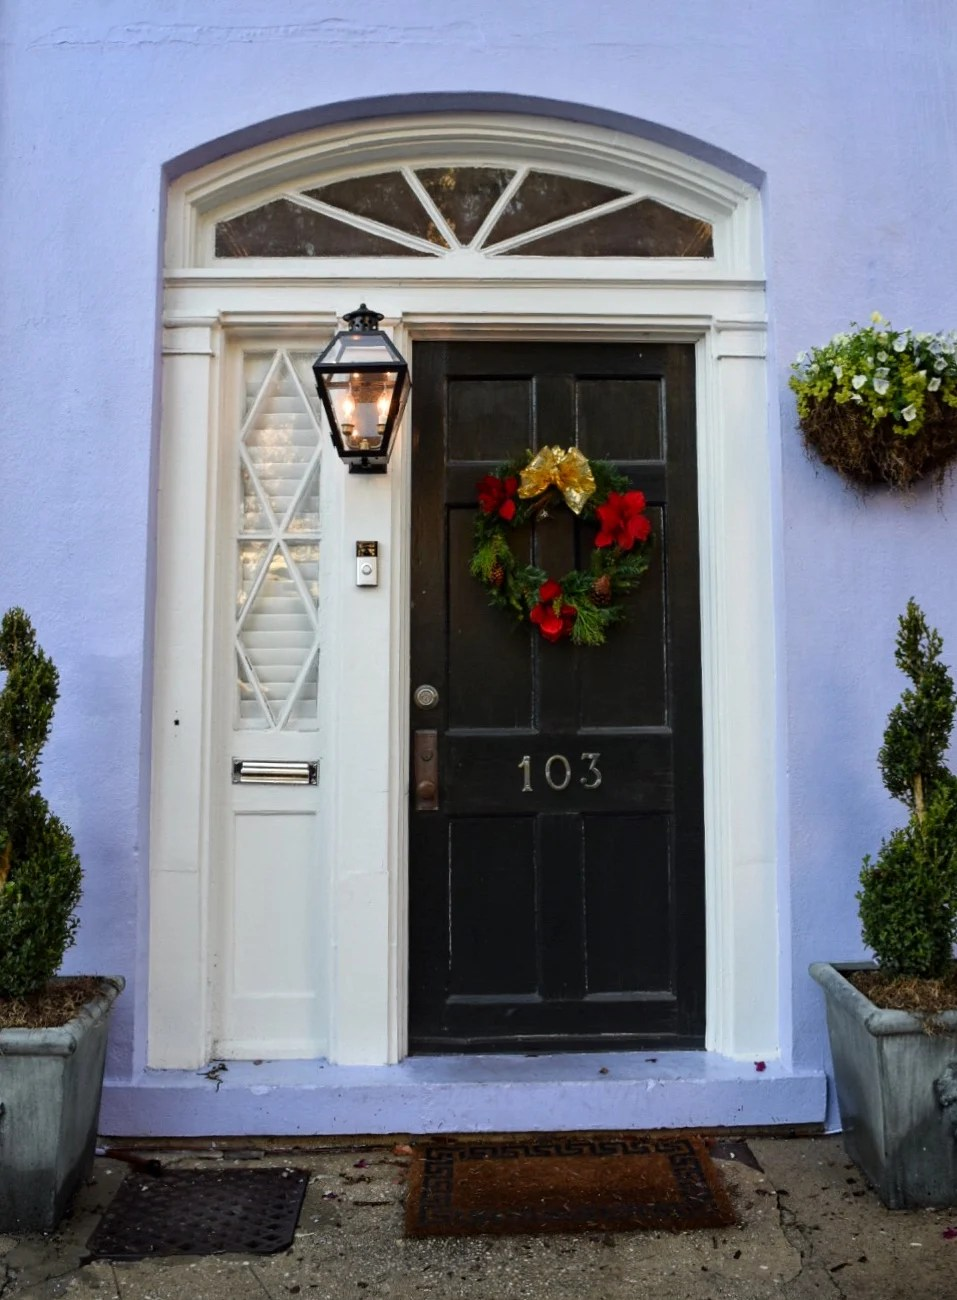 If you're headed to Charleston, South Carolina, these are the most beautiful photo spots that you shouldn't miss, including Rainbow Row.